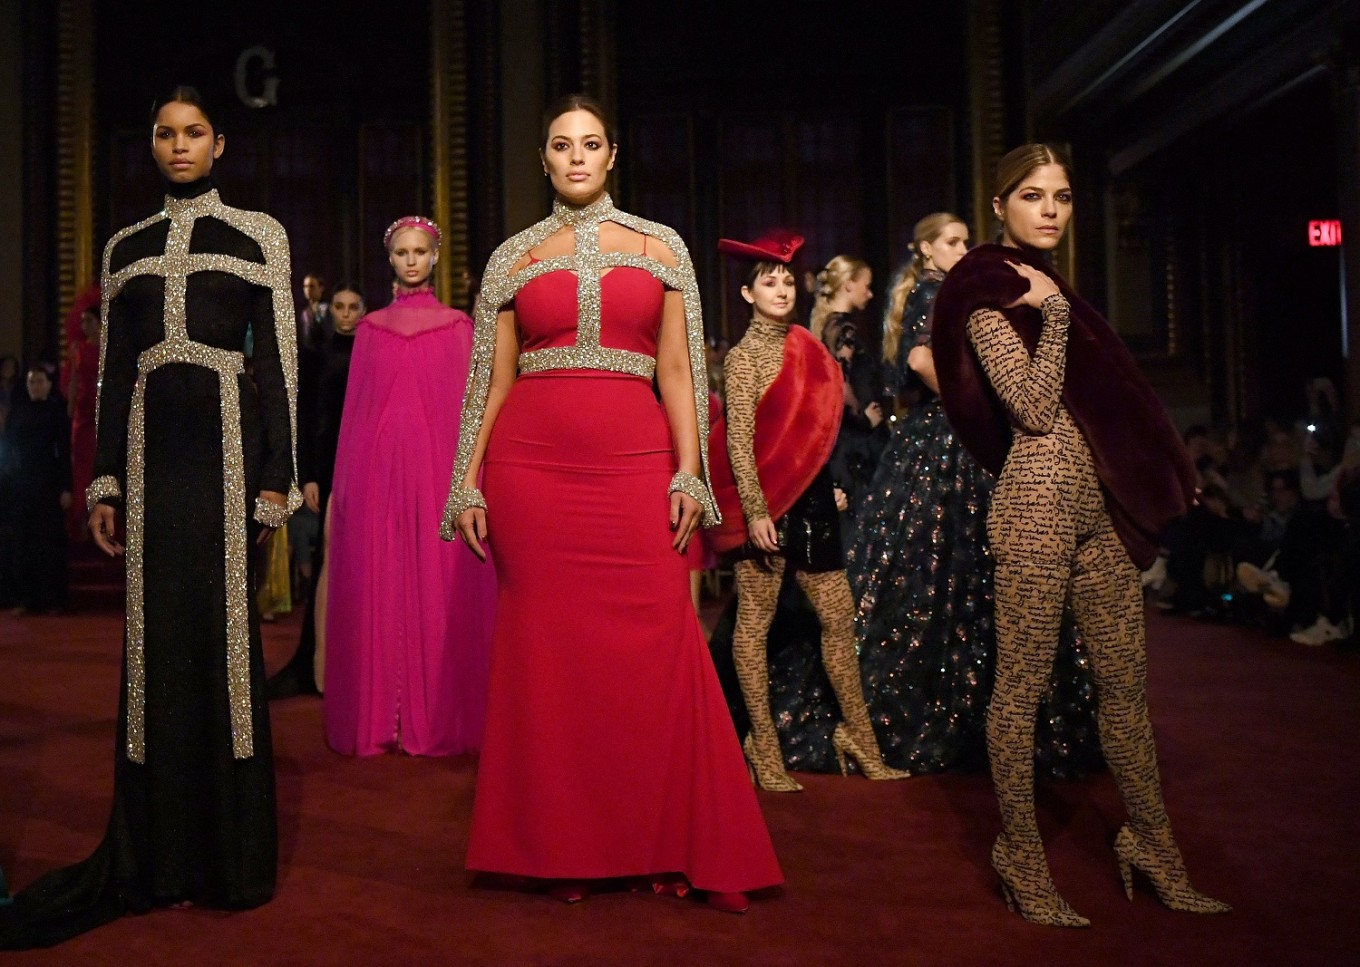 Siriano champions 10 years of diversity on NY runway